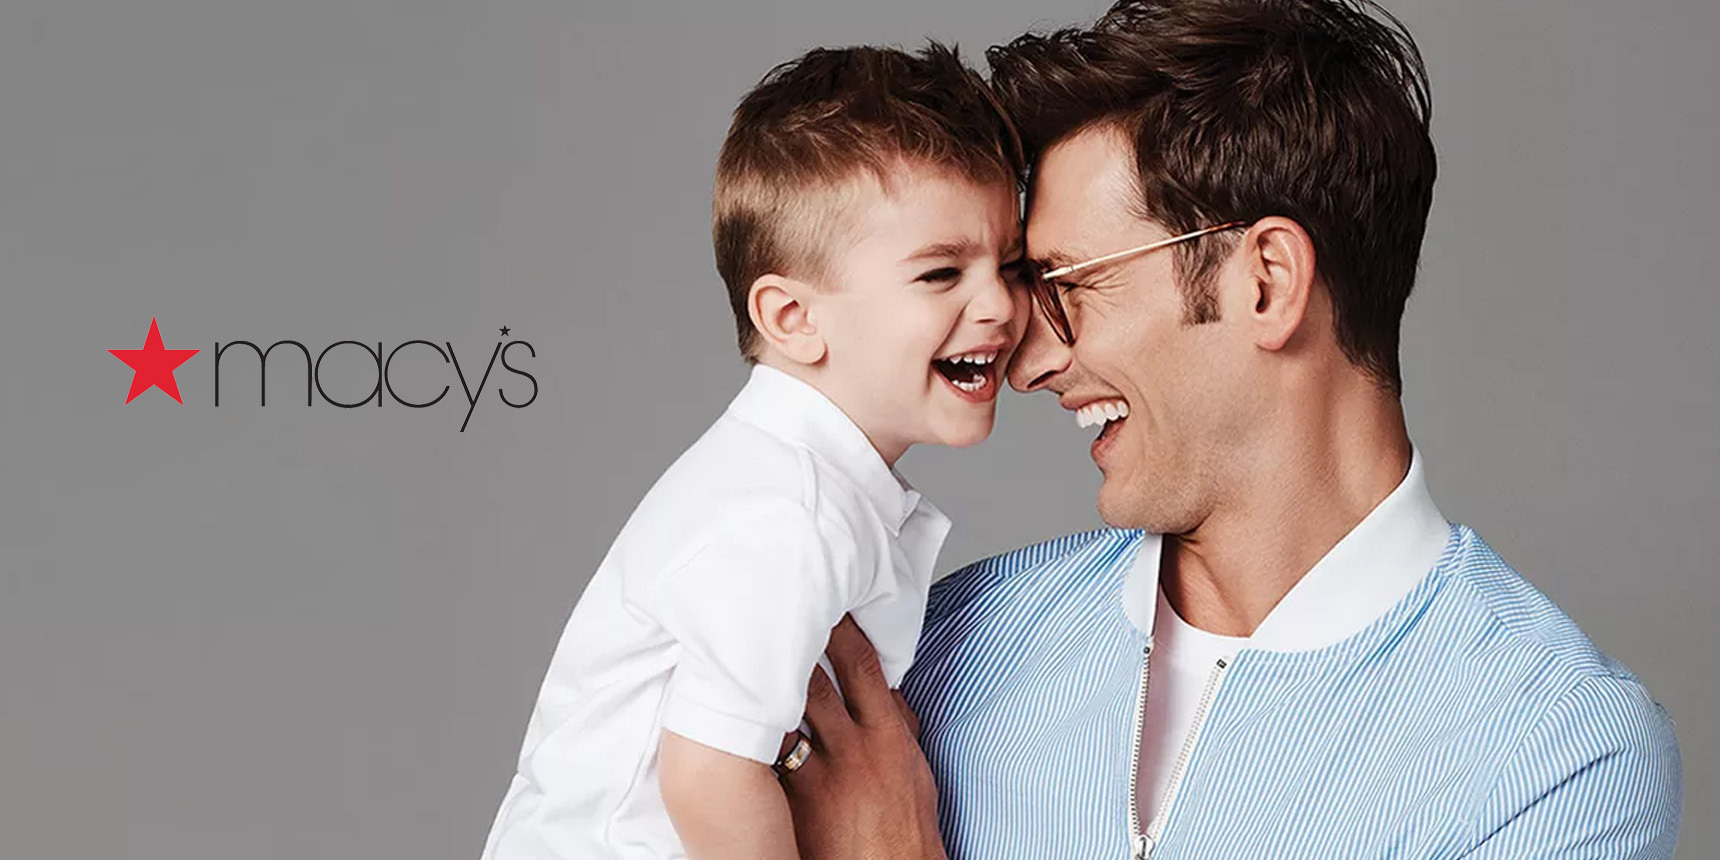 Macy's Close to Summer Sale takes 25% off Lacoste, Ralph Lauren, Tommy Hilfiger & more